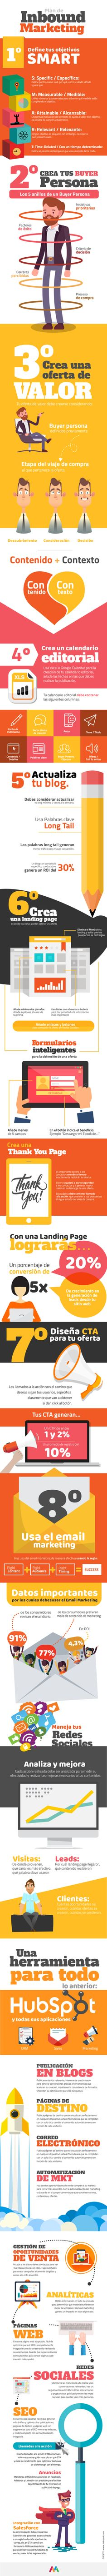 Plan de Inbound Marketing #infografia